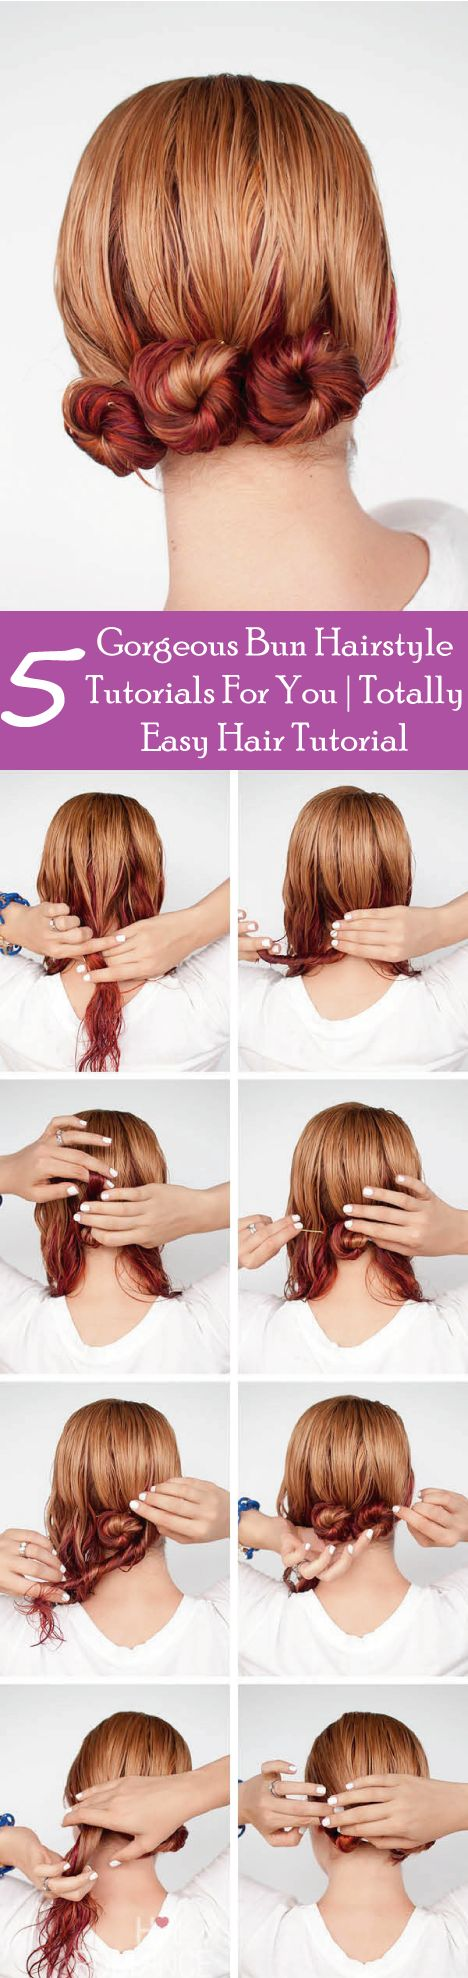 Best Bun Hairstyles Images On Pinterest Casual Hairstyles - High bun hairstyle tutorial